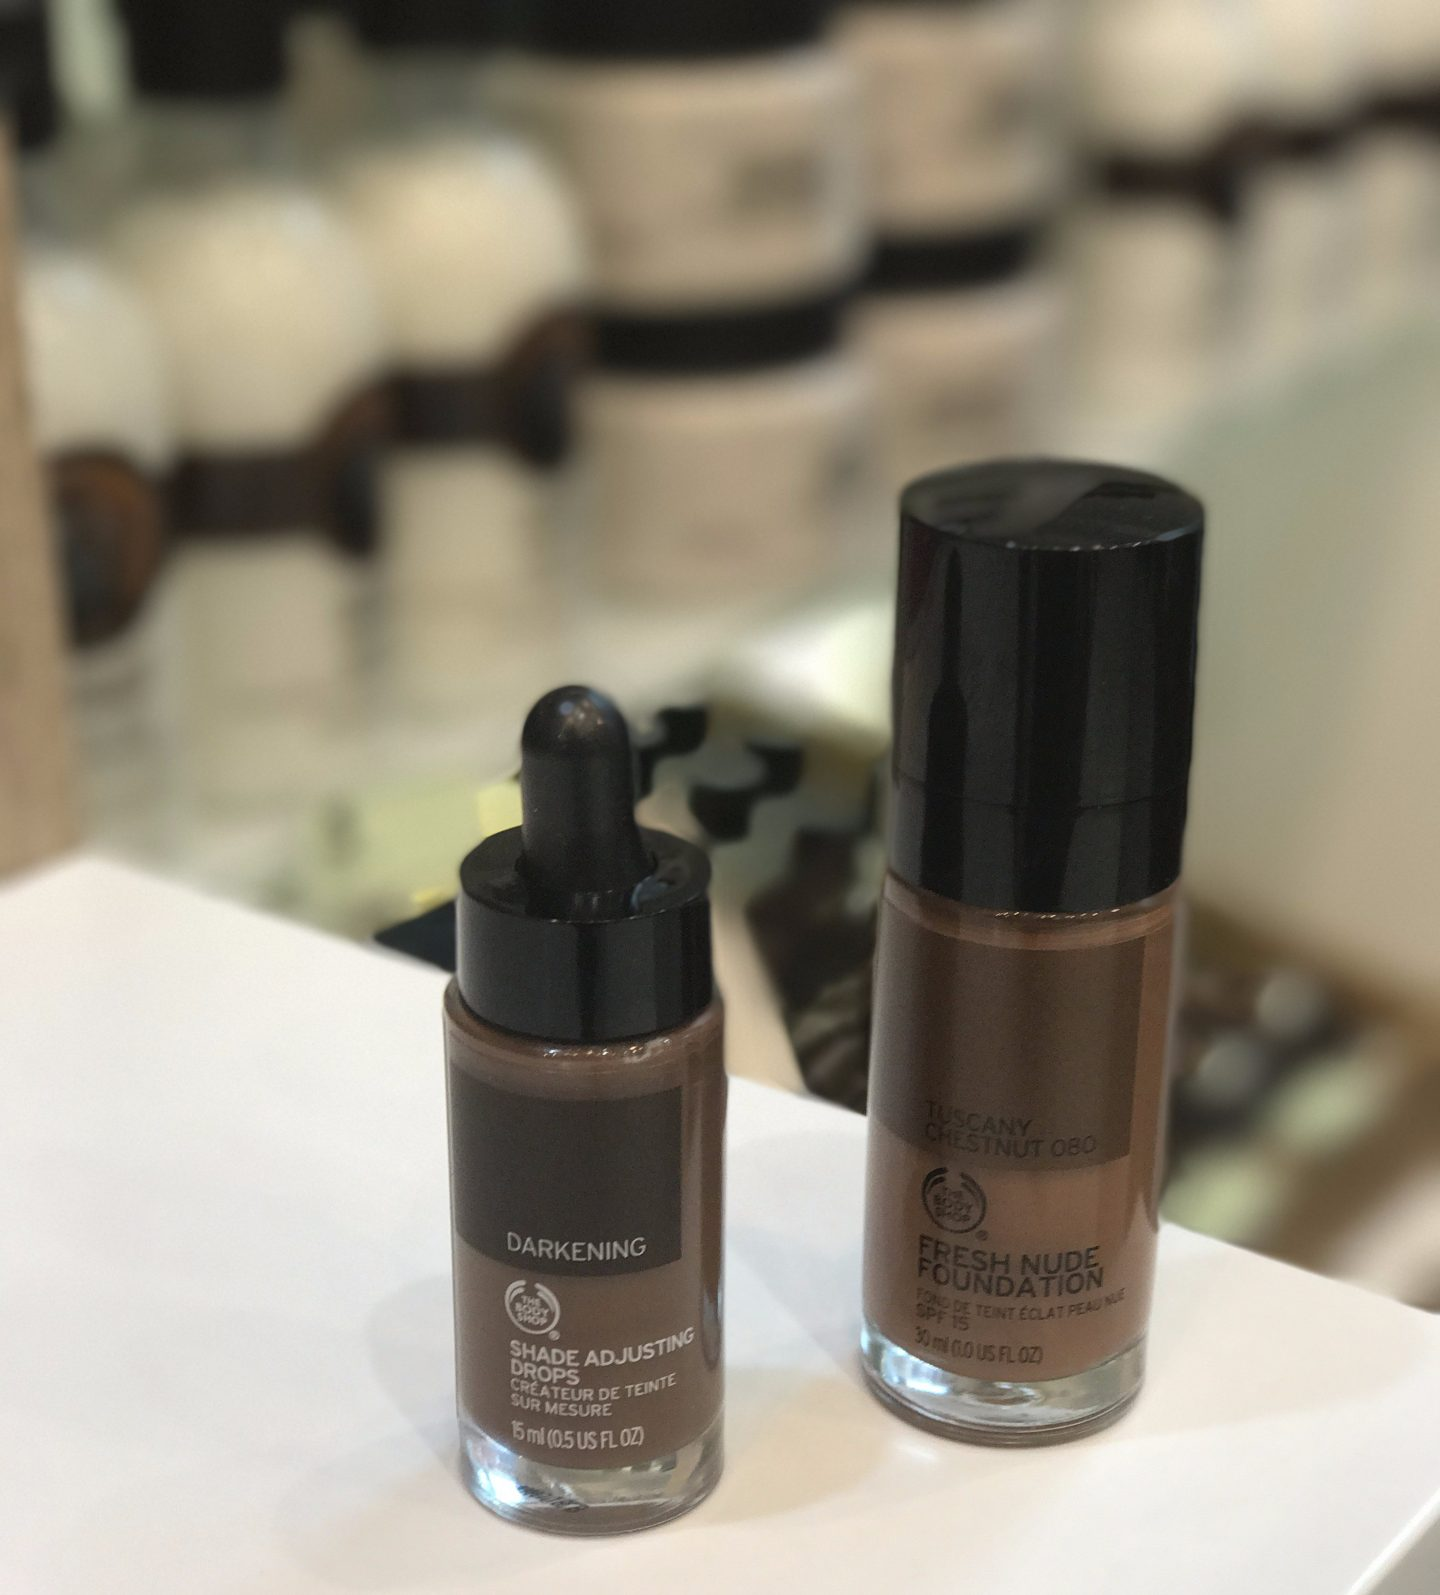 The Body Shop – Fresh Nude Foundation & Shade Adjusting Drops Review